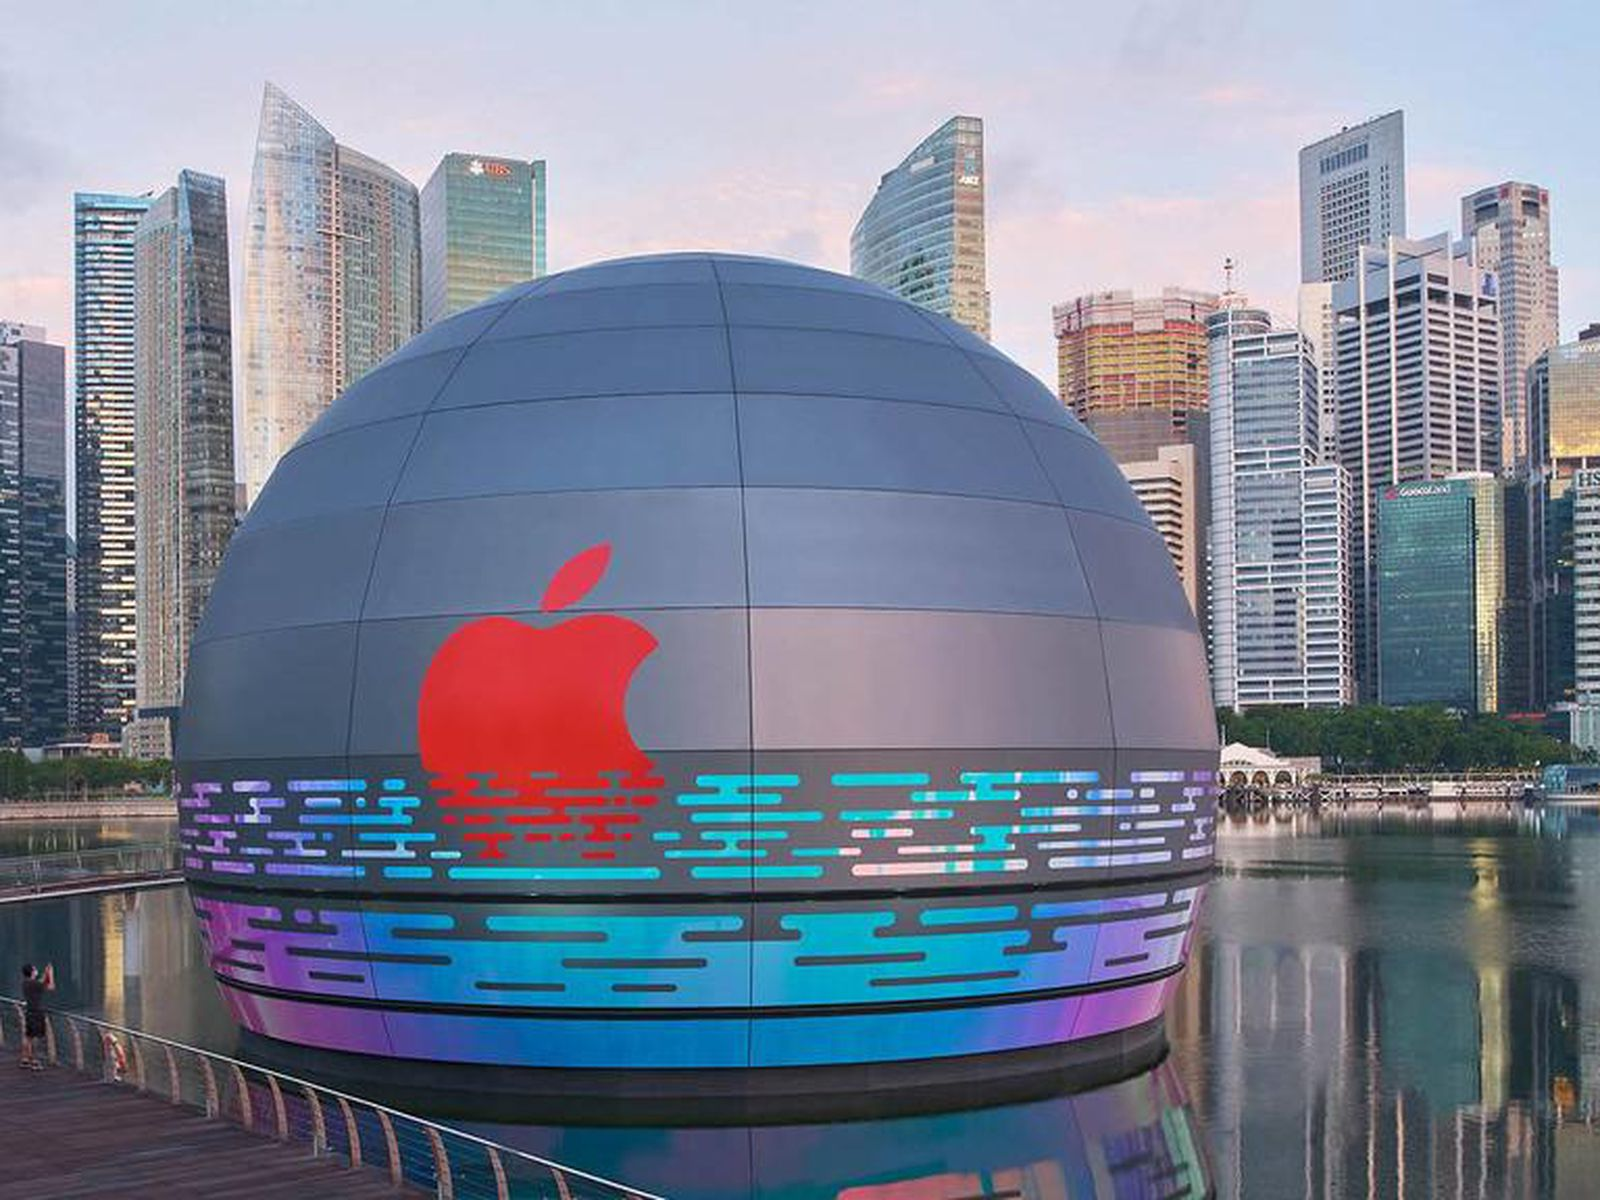 Apple S Marina Bay Sands Retail Store To Open Soon In Singapore Macrumors